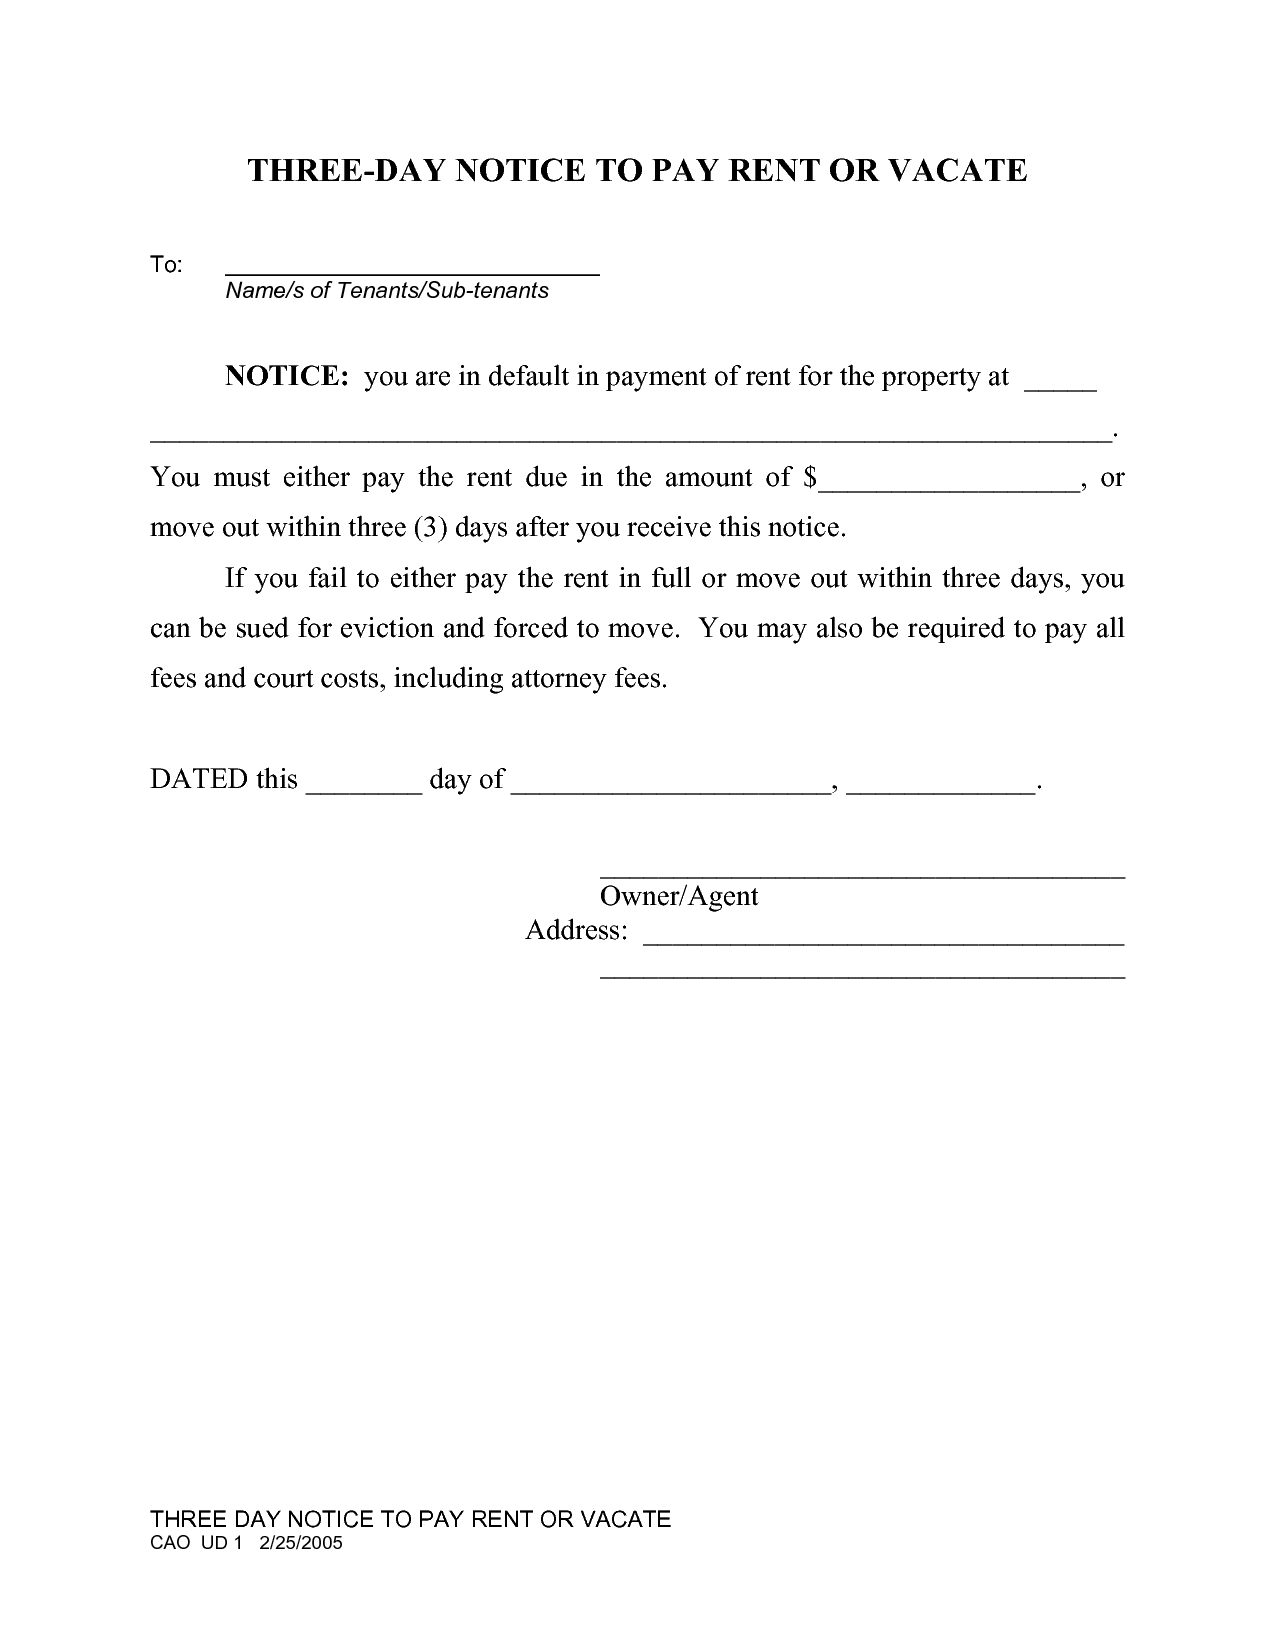 eviction notice templates – How to Write a Letter of Eviction